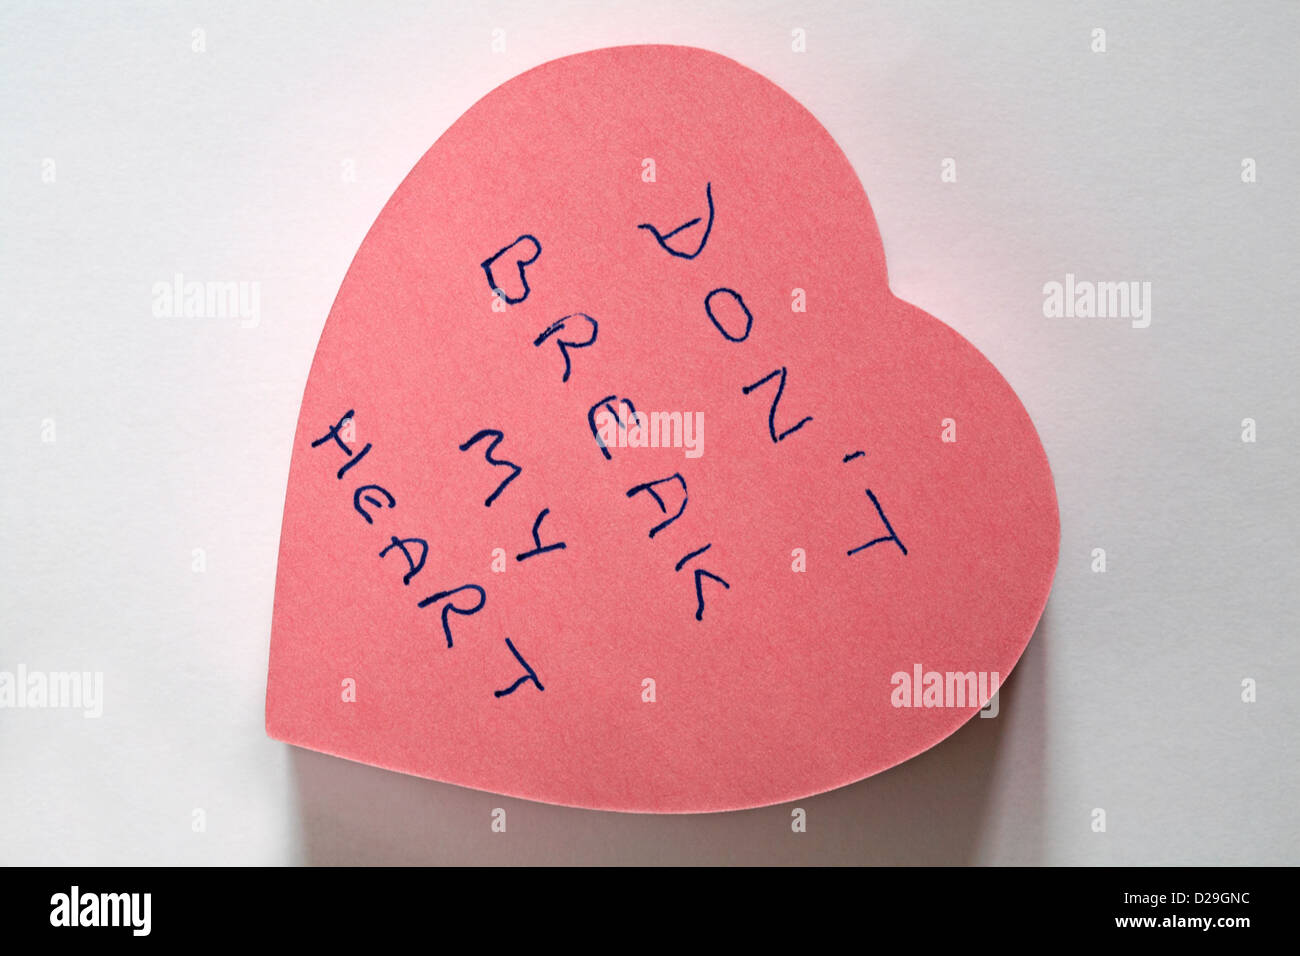 don't break my heart message written on pink heart shaped post it note pad isolated on white background - Stock Image